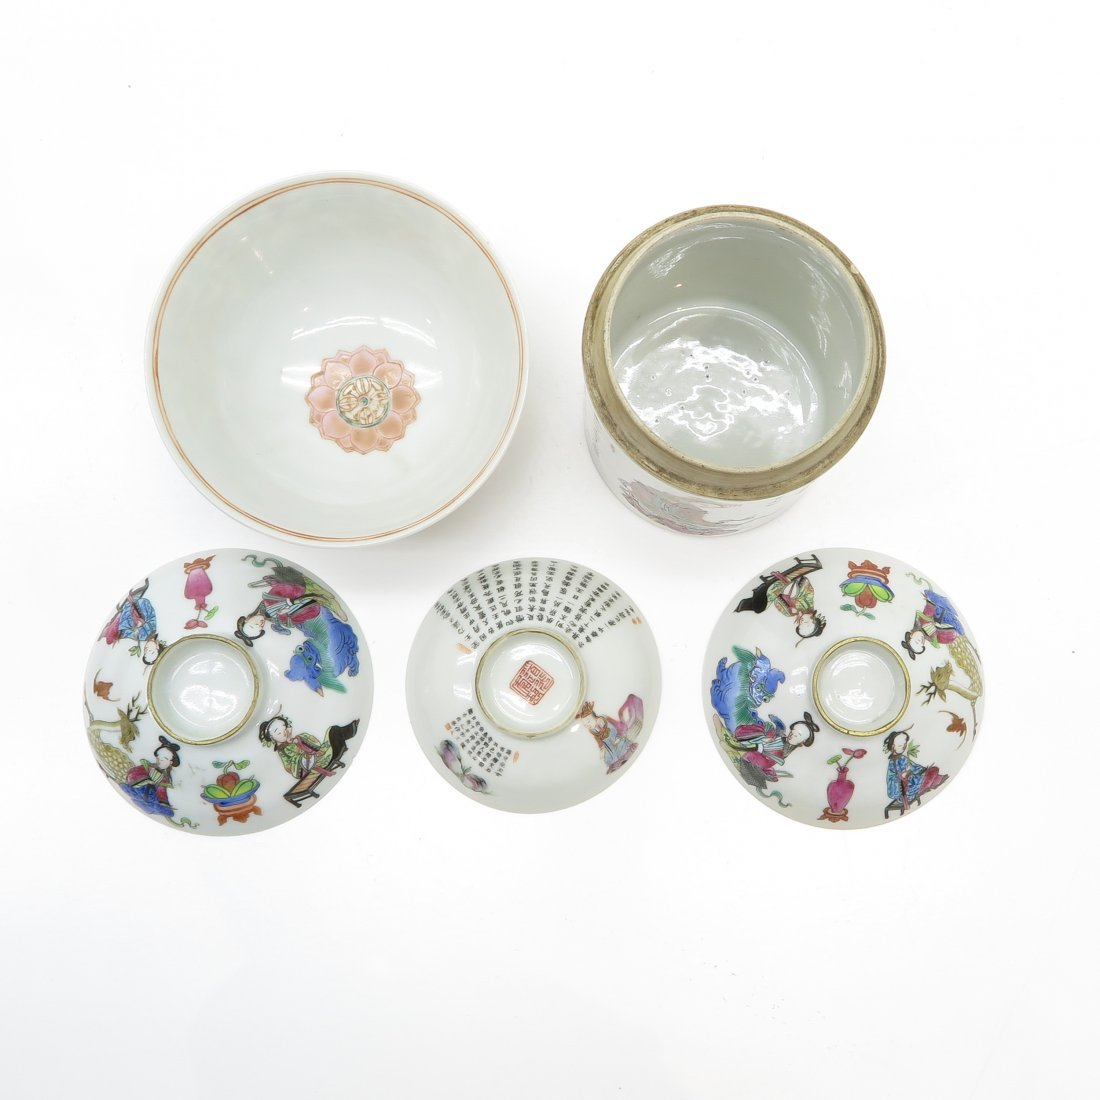 Diverse Lot of China Porcelain - 5